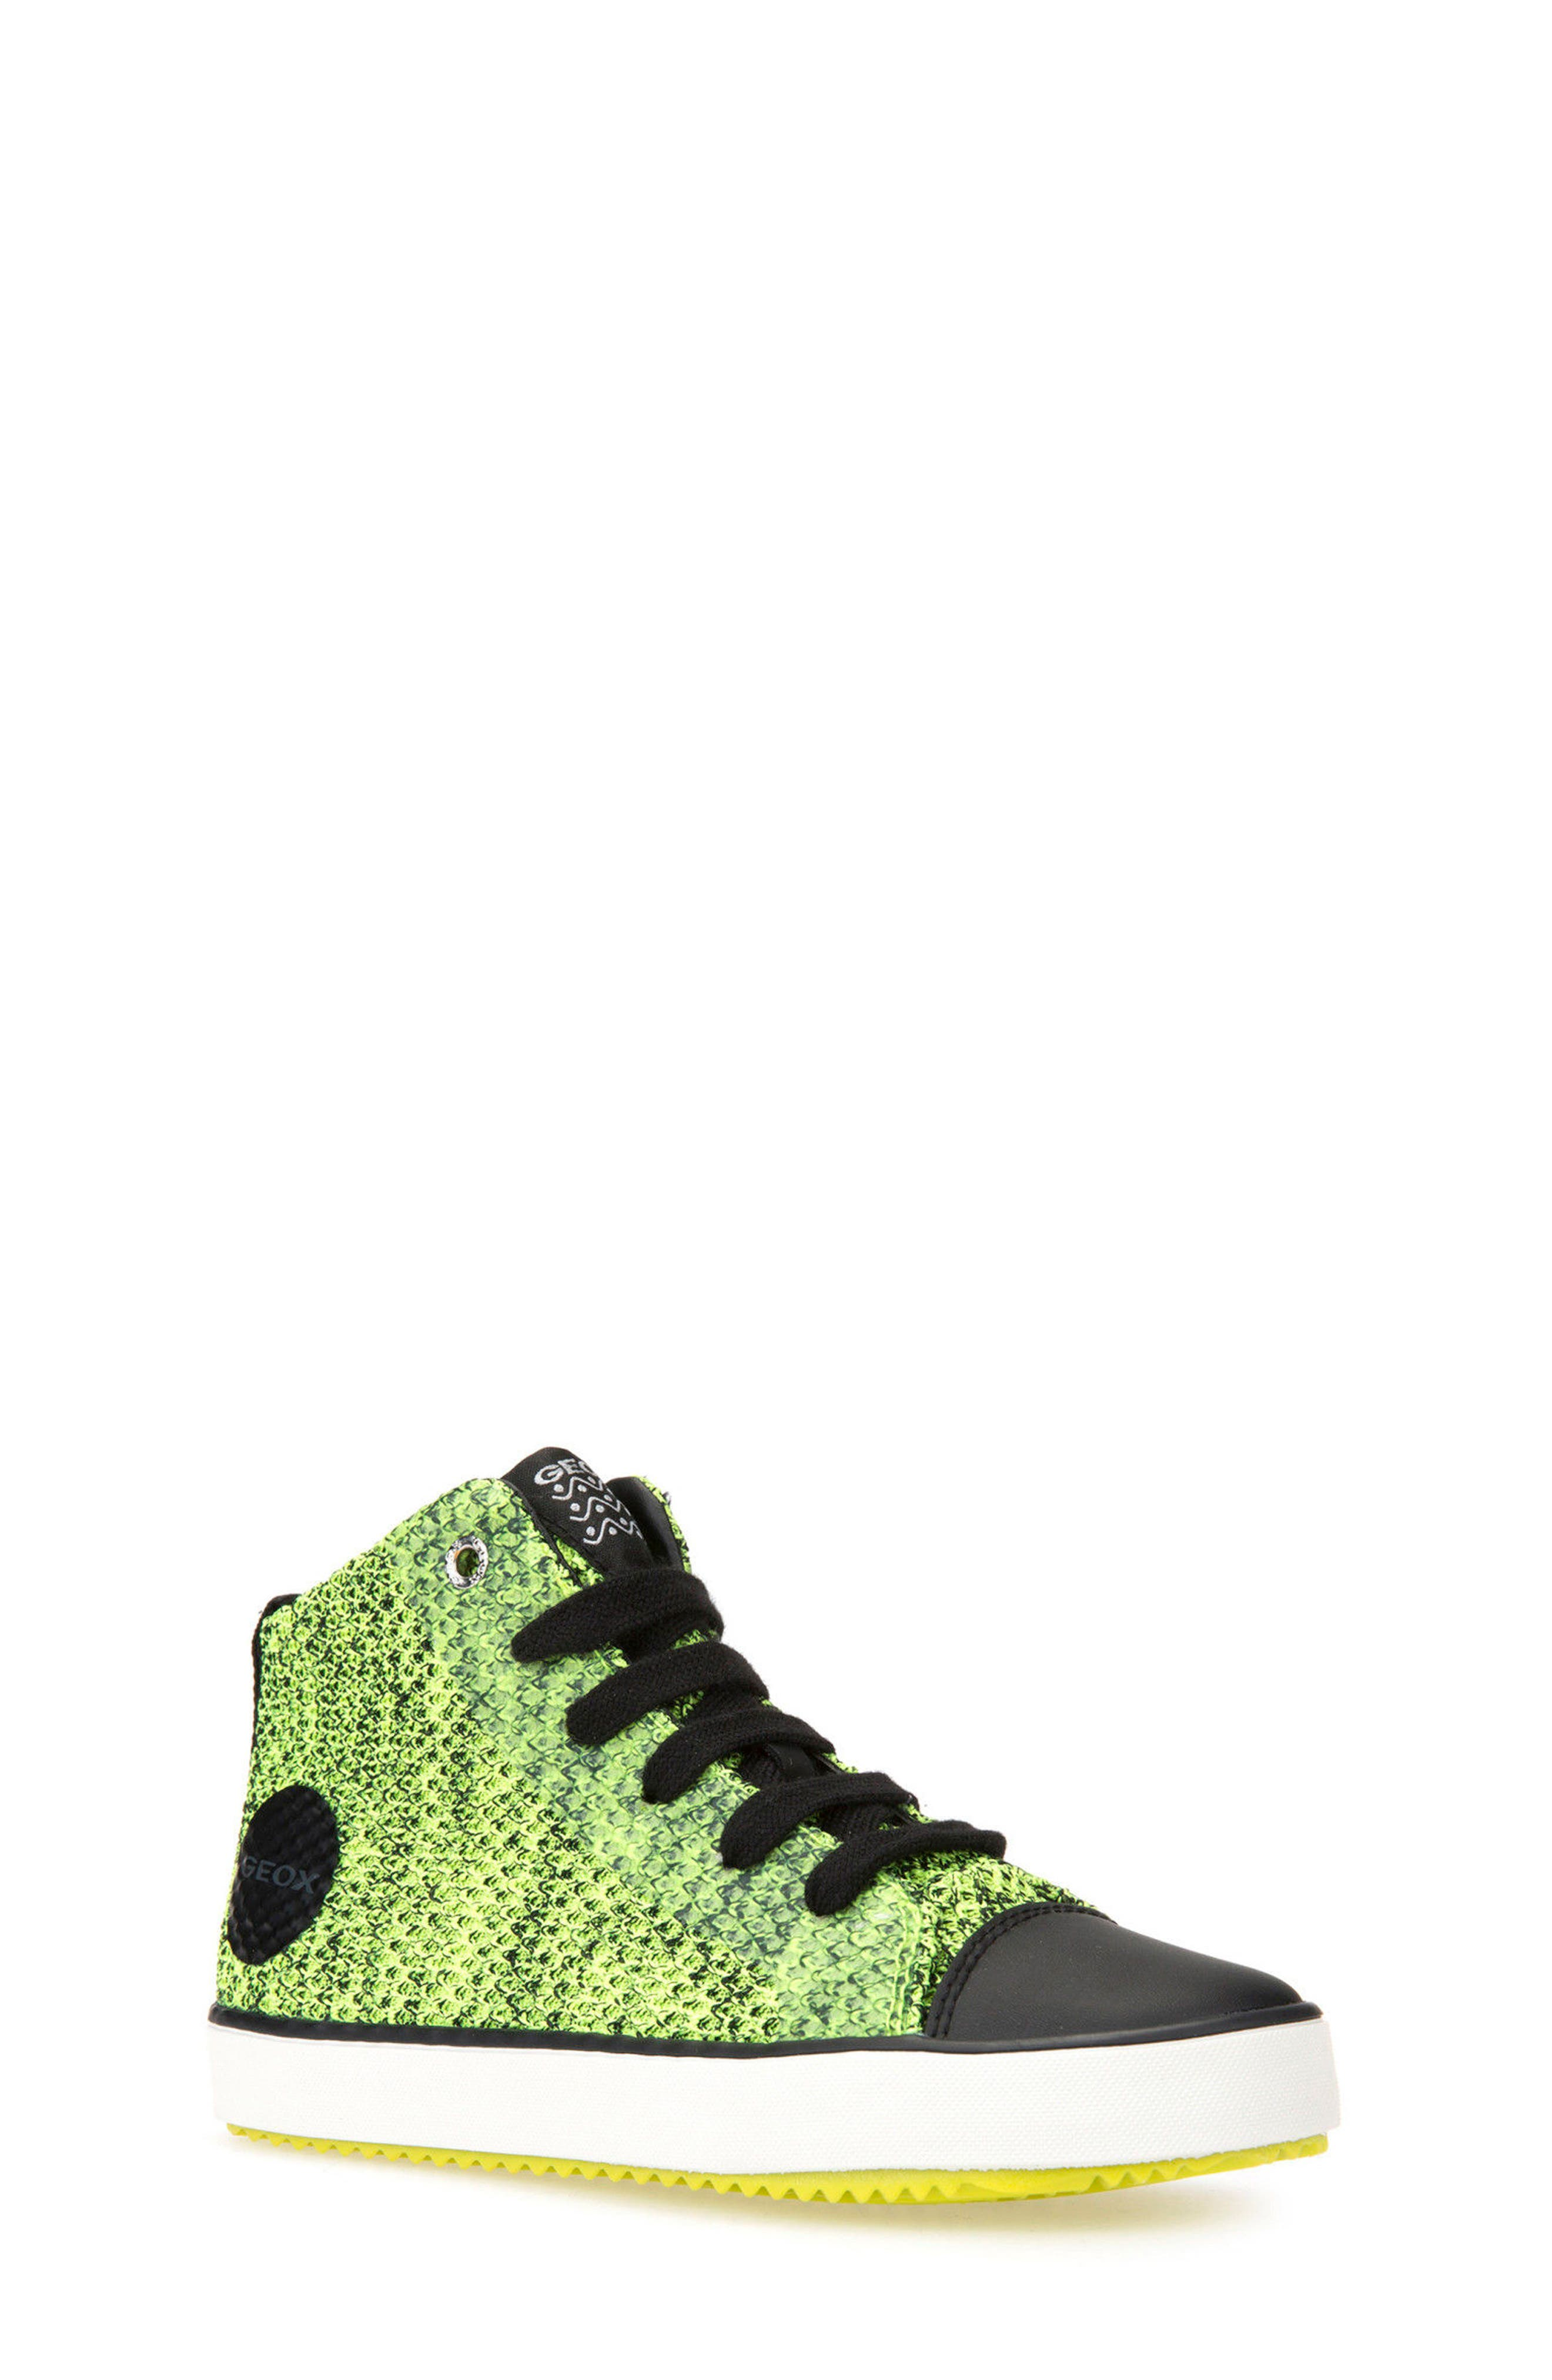 Alonisso Knit Mid Top Sneaker,                             Main thumbnail 1, color,                             Lime/ Black